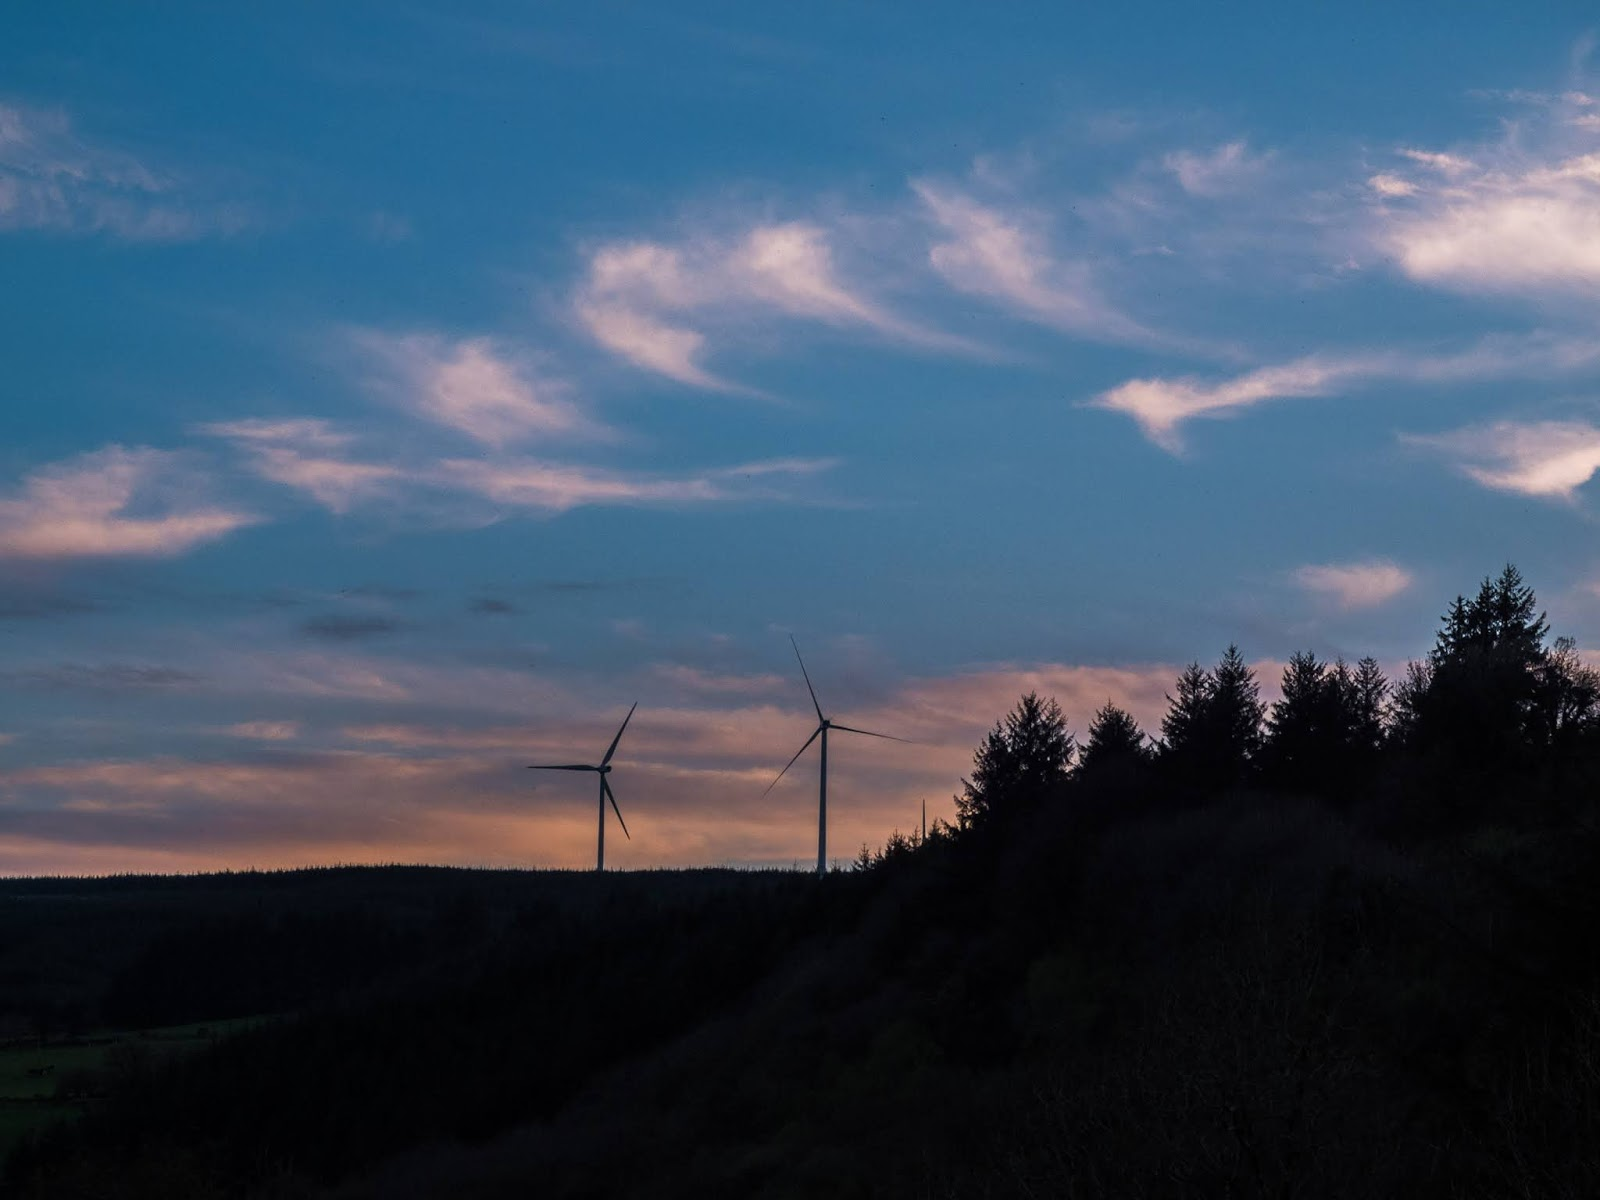 Wispy sunset clouds over a valley in the Boggeragh Mountains with coniferous forestry and windmills.